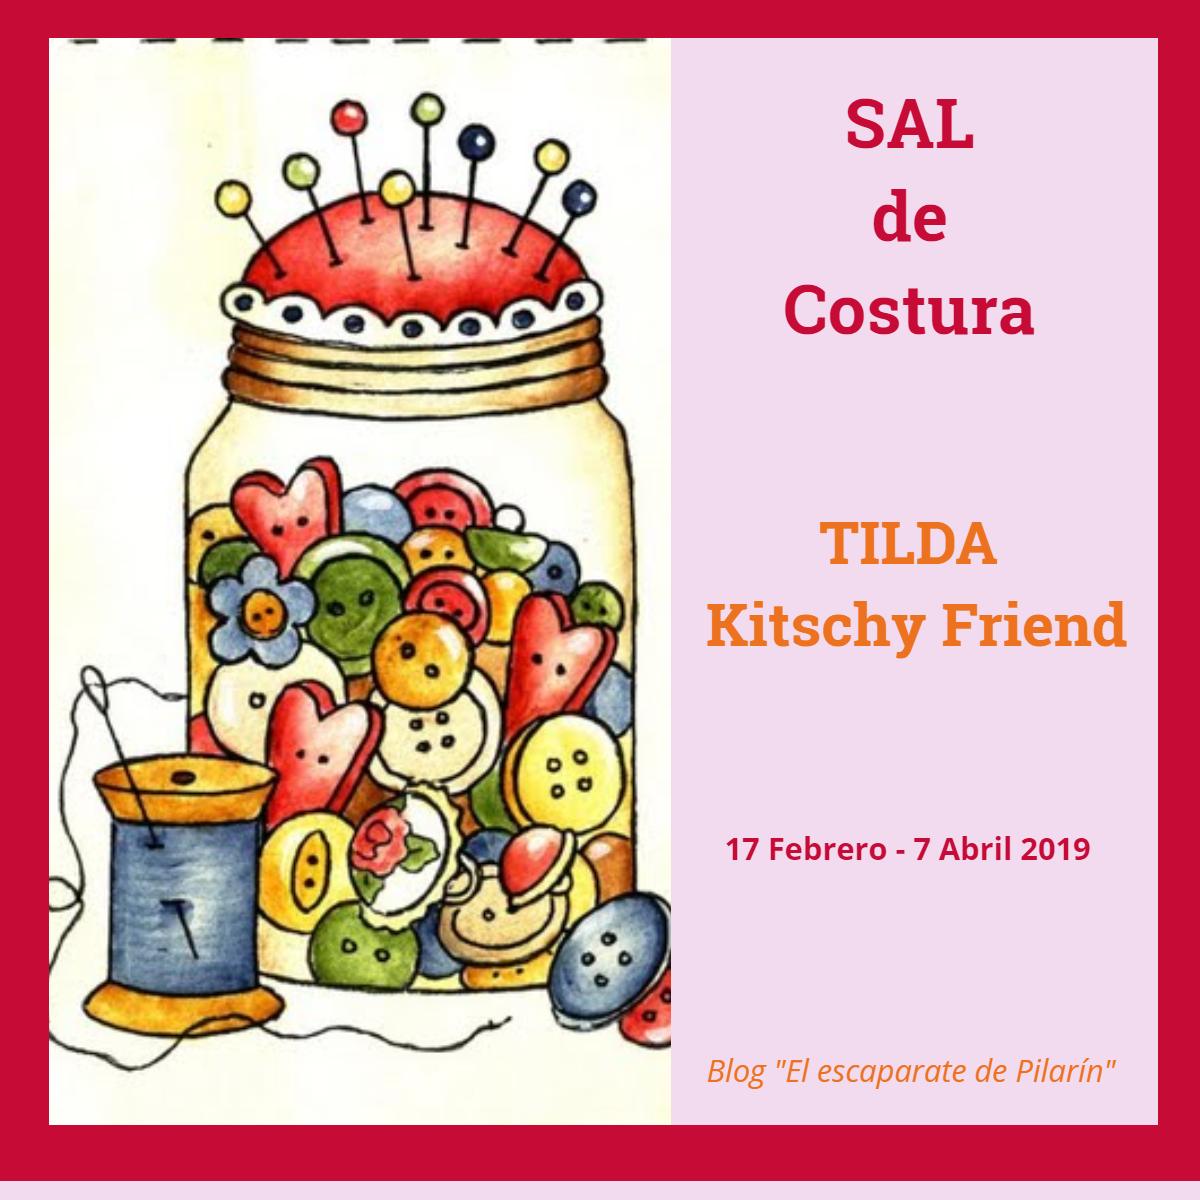 SAL de COSTURA - TILDA Kitschy Friend